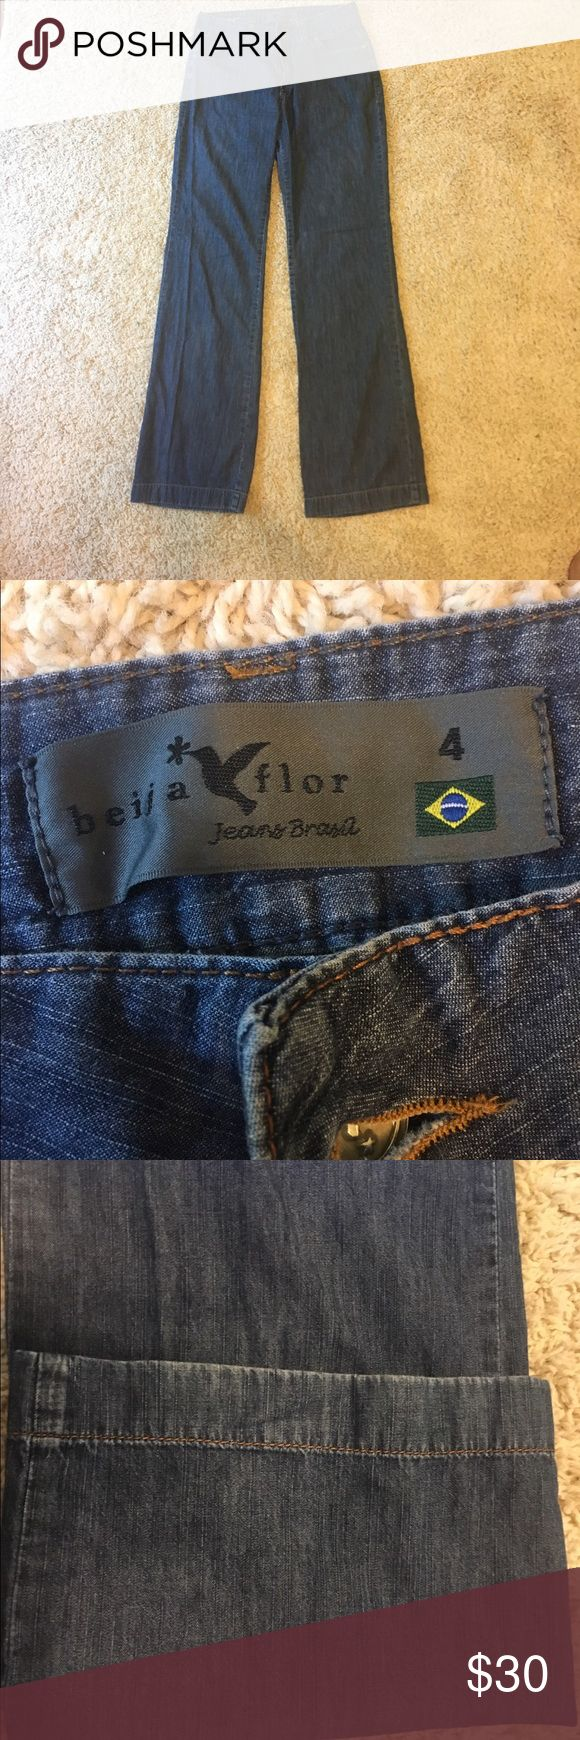 "Beija- Flor Amanda Jeans. High waisted, wide leg Great designer jeans from and ethical company! Inseam approximately 33"". High waisted, wide leg, summer weight. This is a fun style!! Make an offer Beija Flor Jeans Flare & Wide Leg"